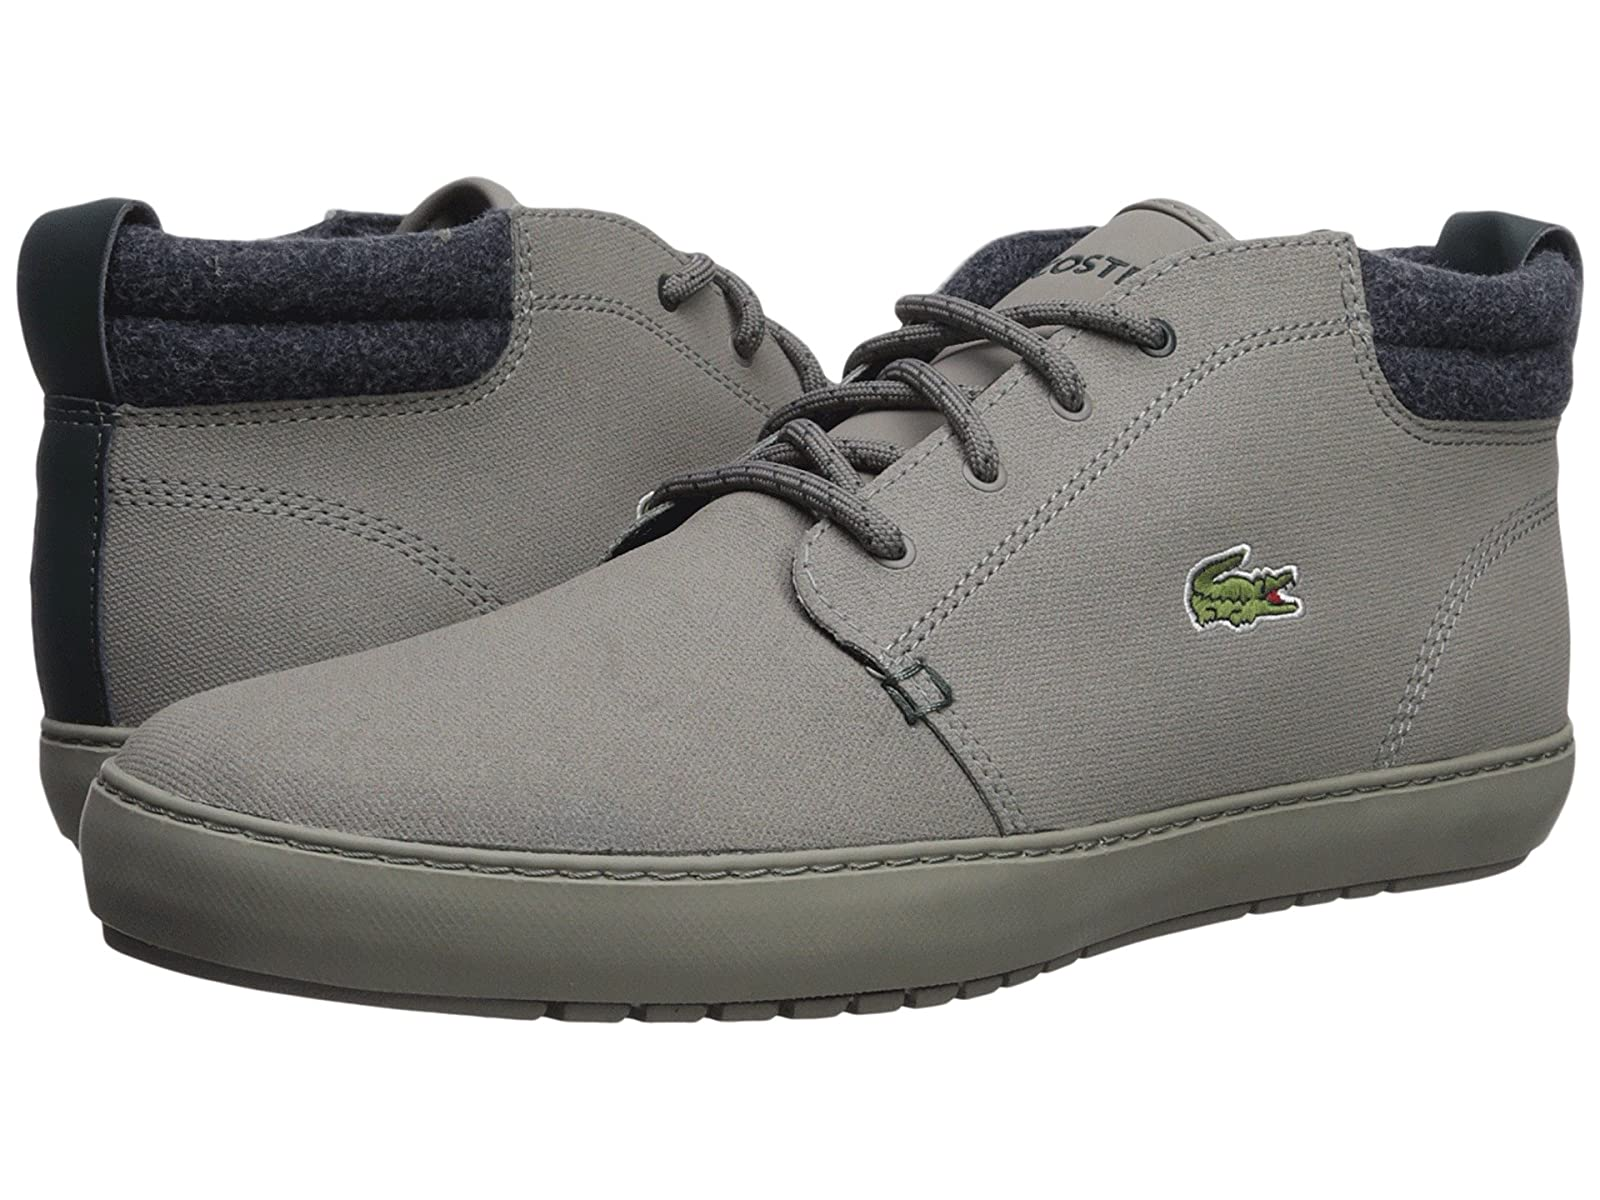 Lacoste Ampthill Terra 417 1 CamCheap and distinctive eye-catching shoes